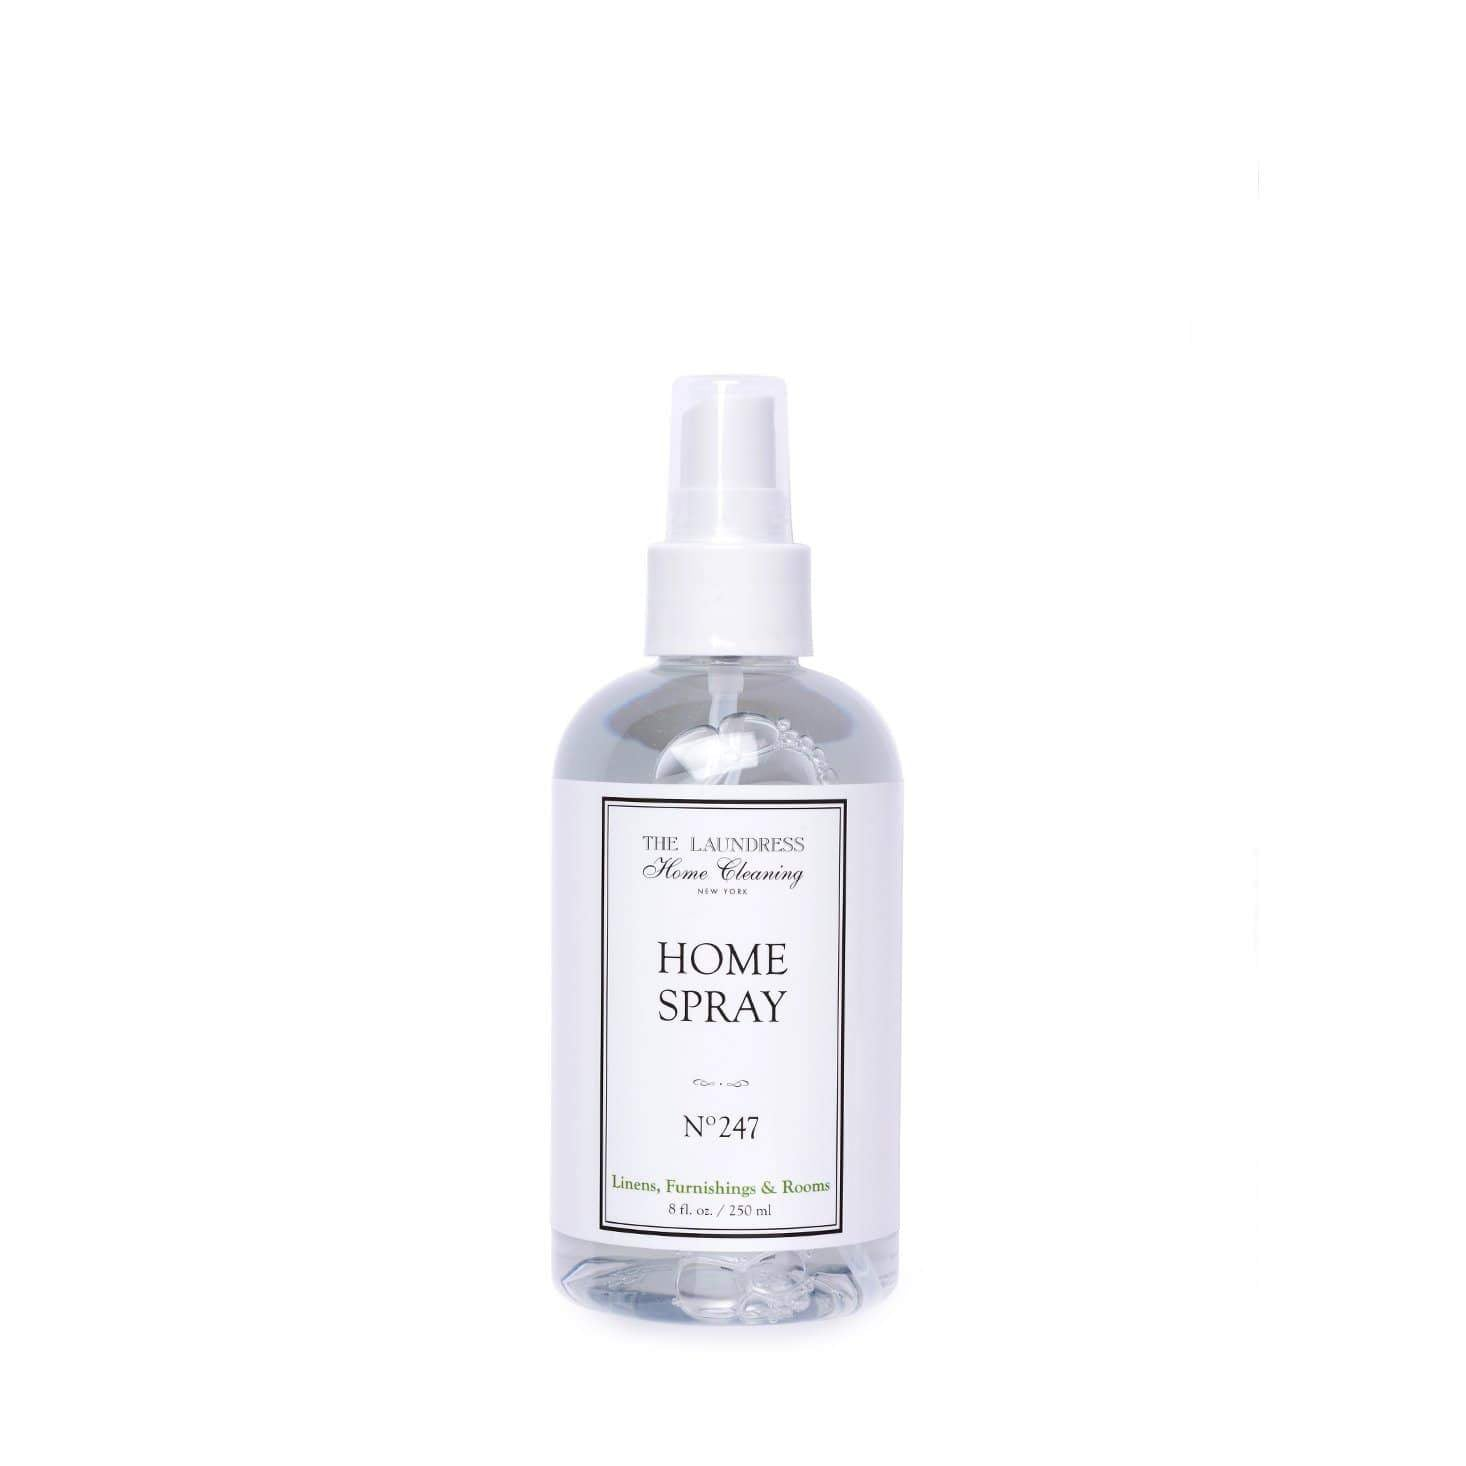 The Laundress Home Spray #247 250ml - Classic